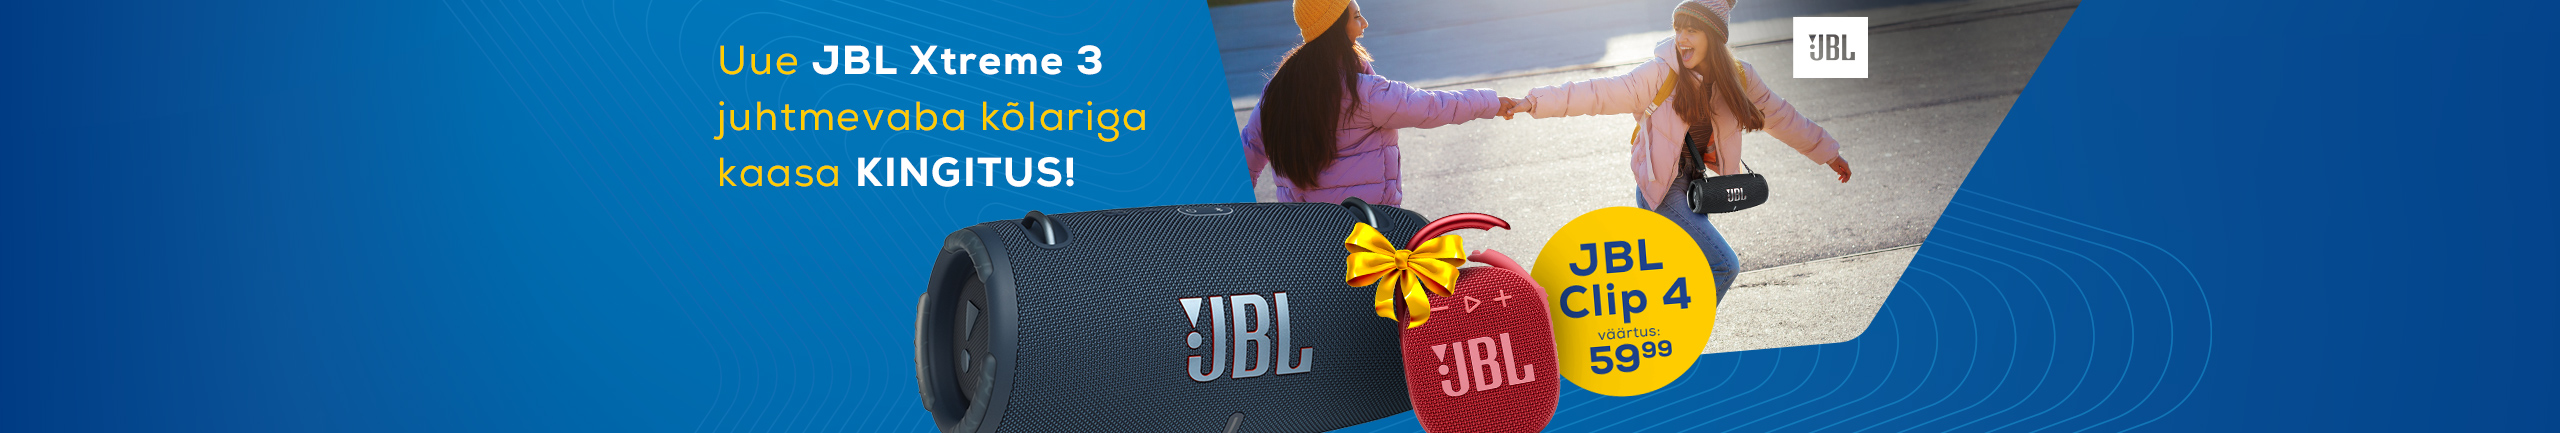 Buy a JBL Xtreme 3 speaker and get Clip 4 as a gift!